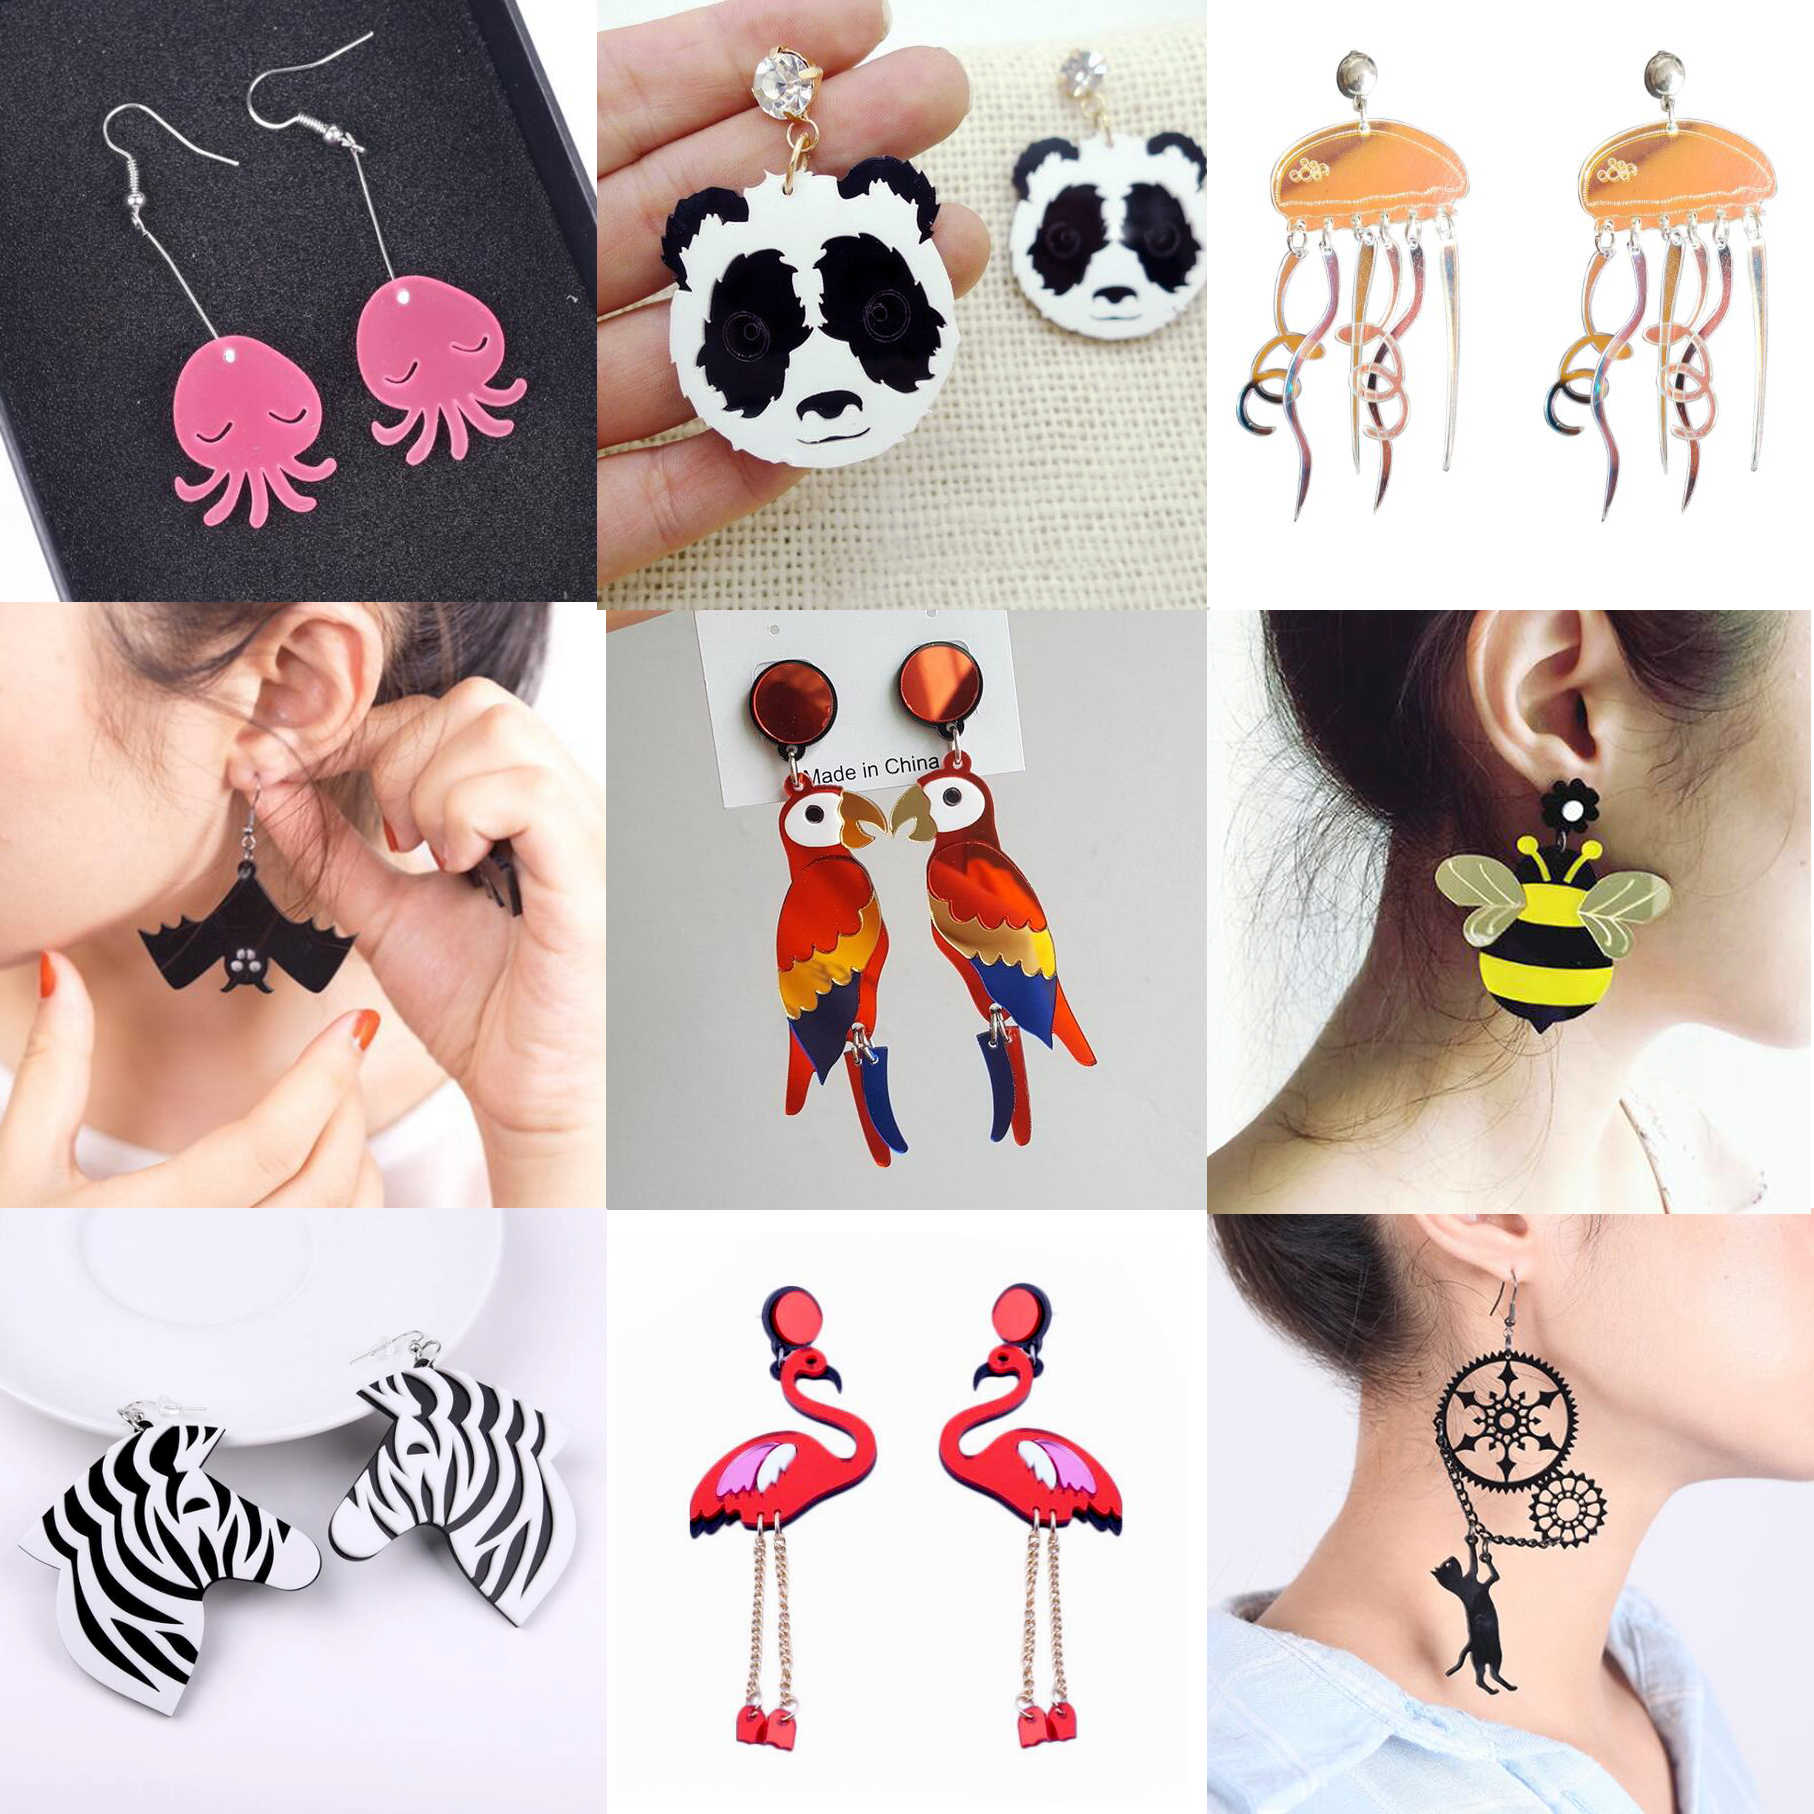 Earrings For Women Kelly Earrings Fashion Charm Exaggerated Eardrop Trendy Dangler Hip Hop Girls Jewelry Gift Cute Sweet Animals